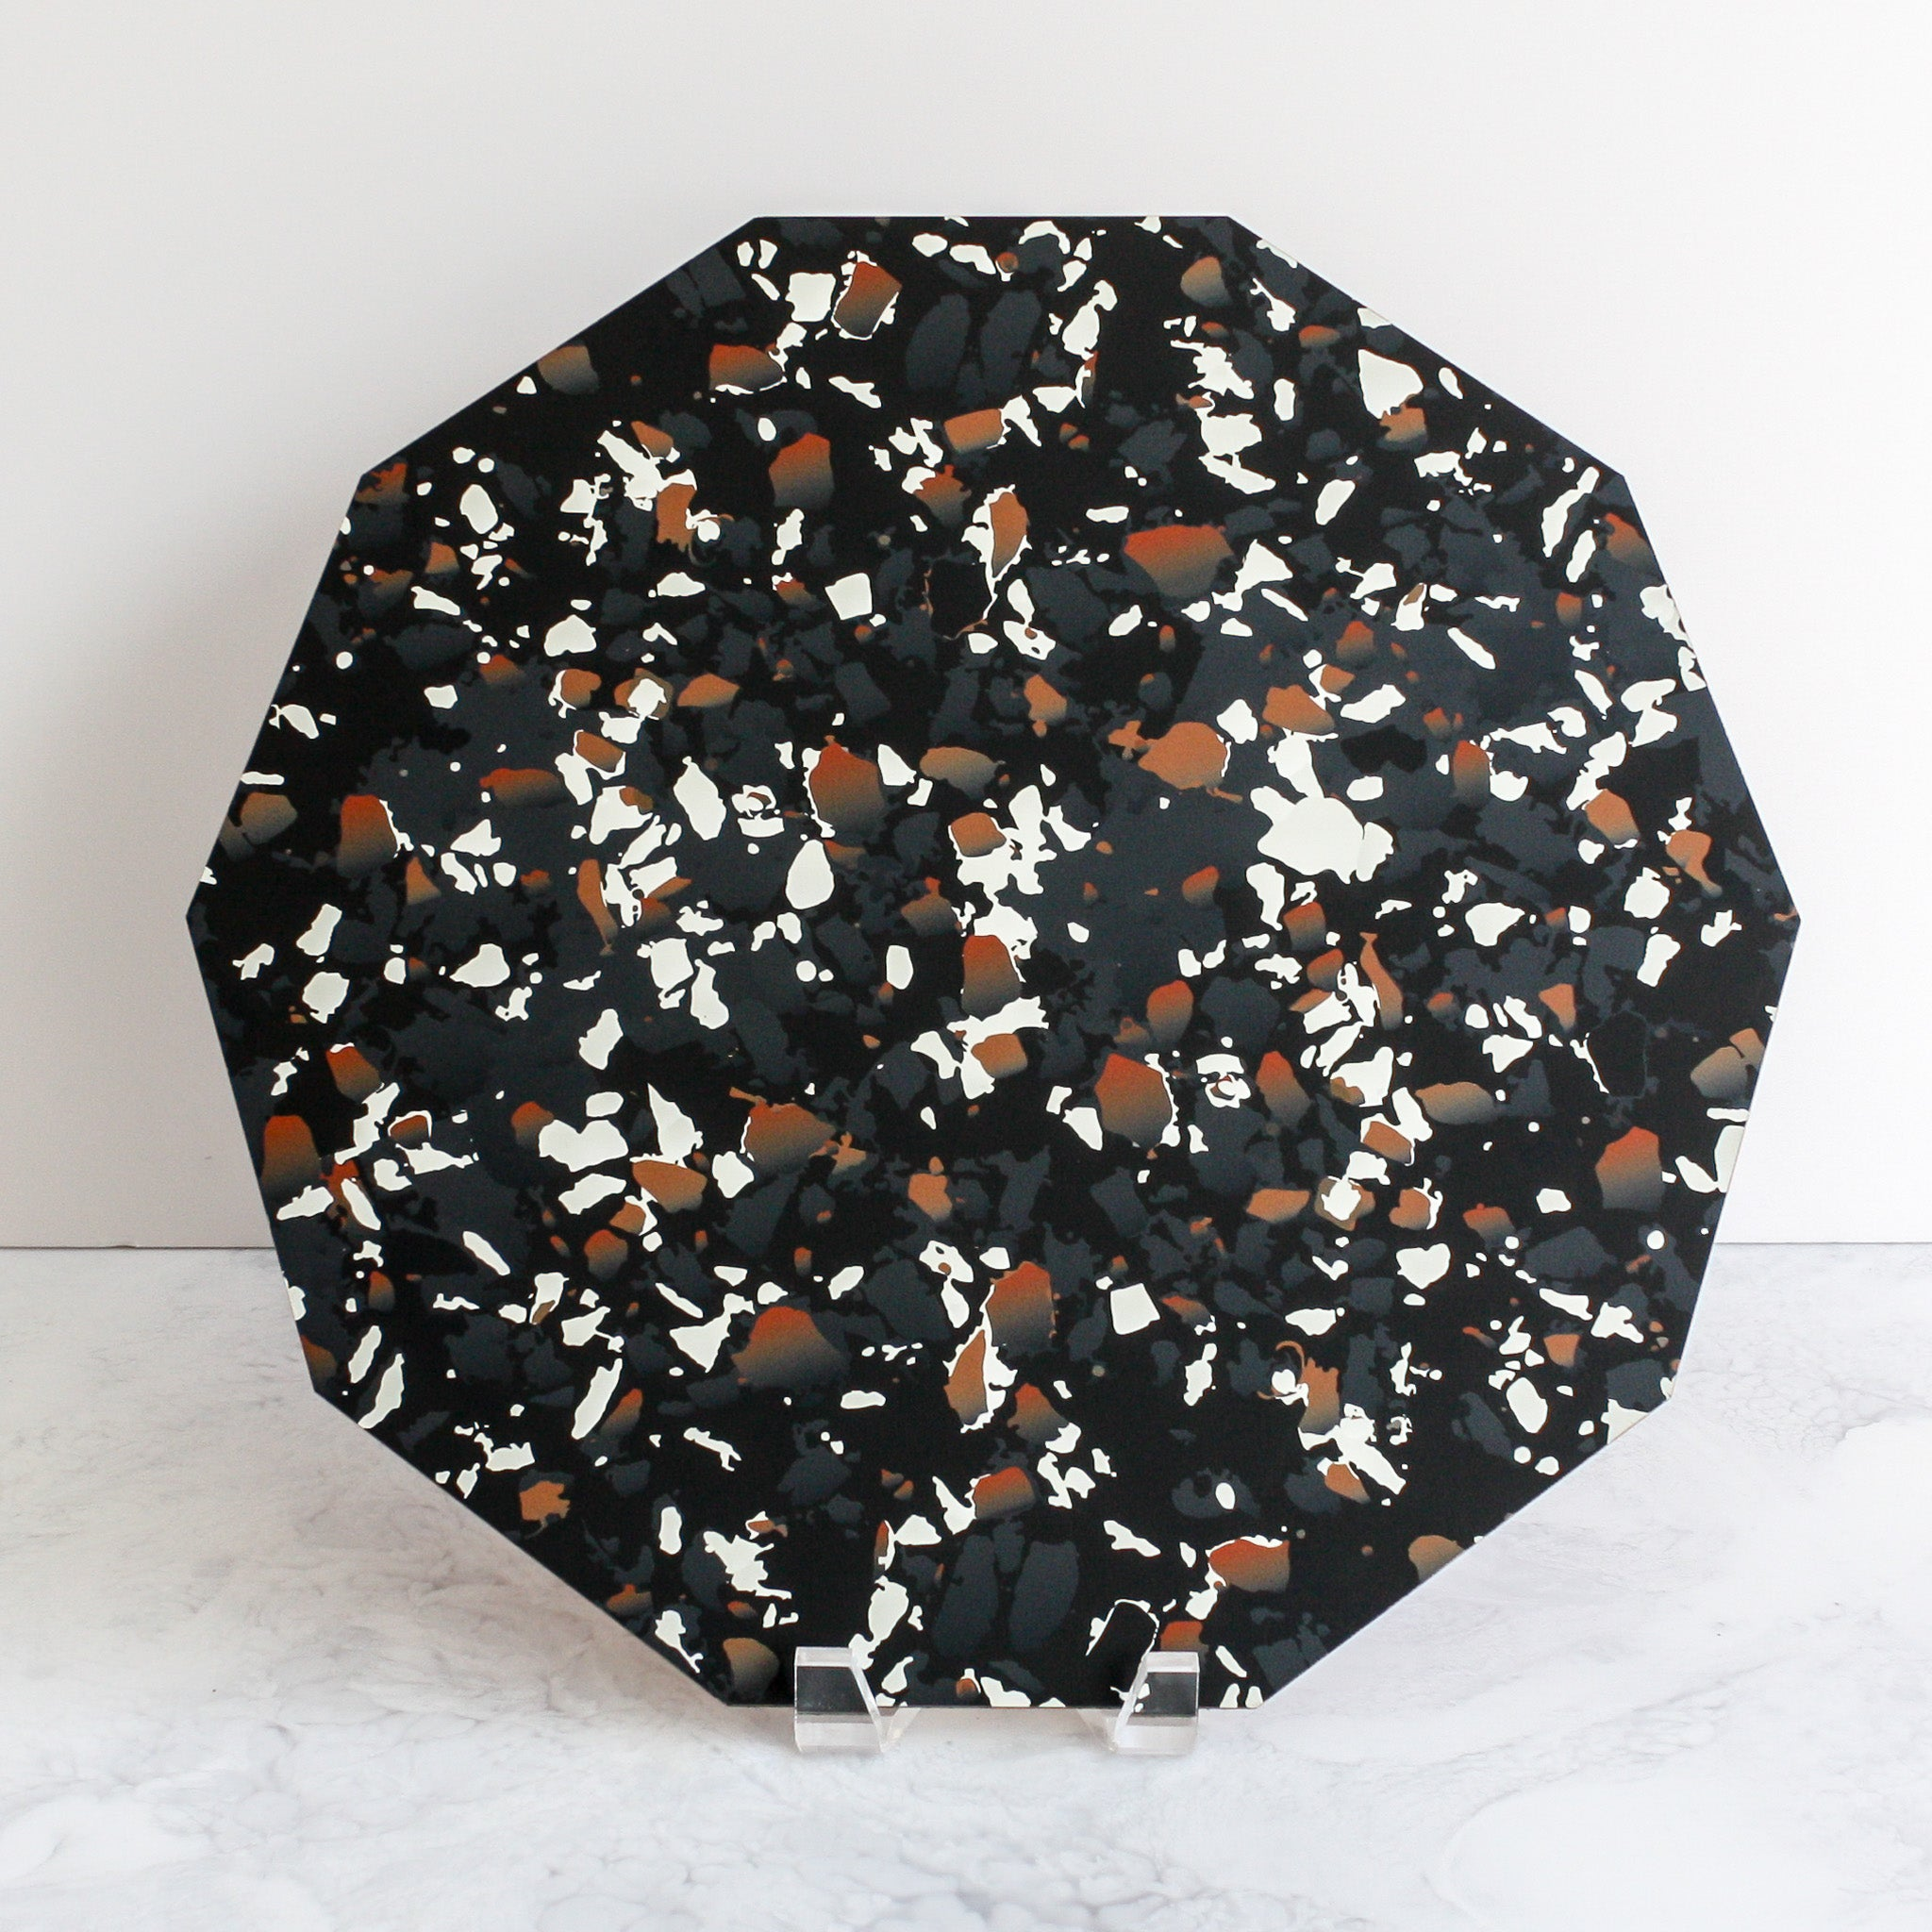 Terrazzo placemats in black made of cork and wood by Tisch New York